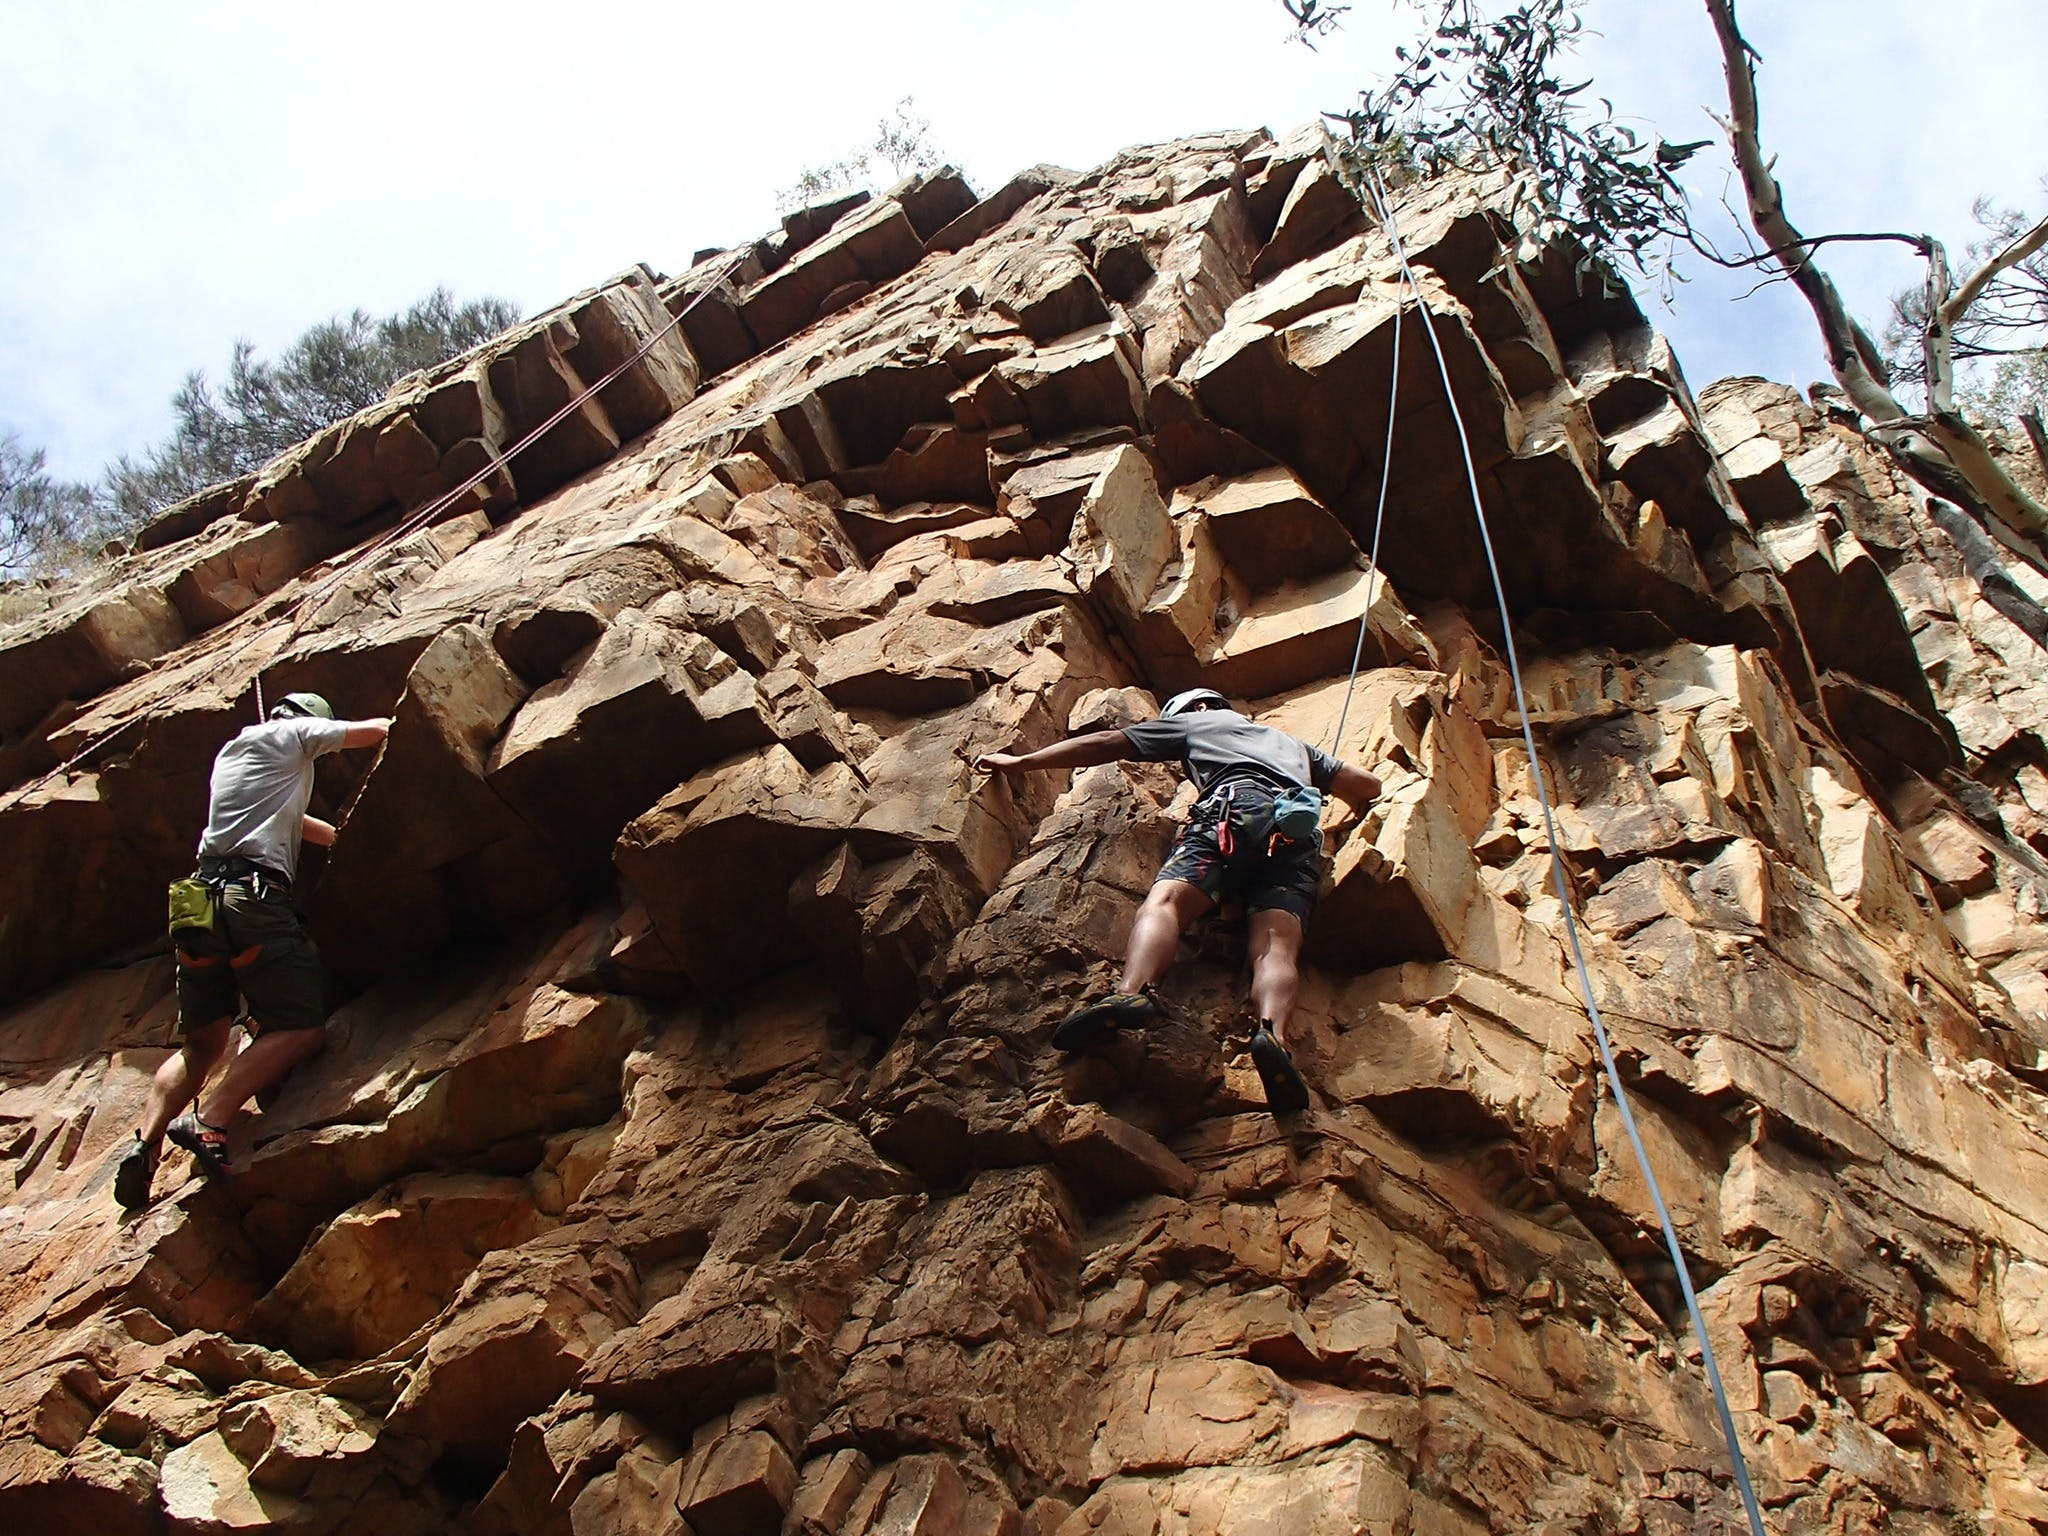 Rock Climbing in Morialta - Accommodation Cairns